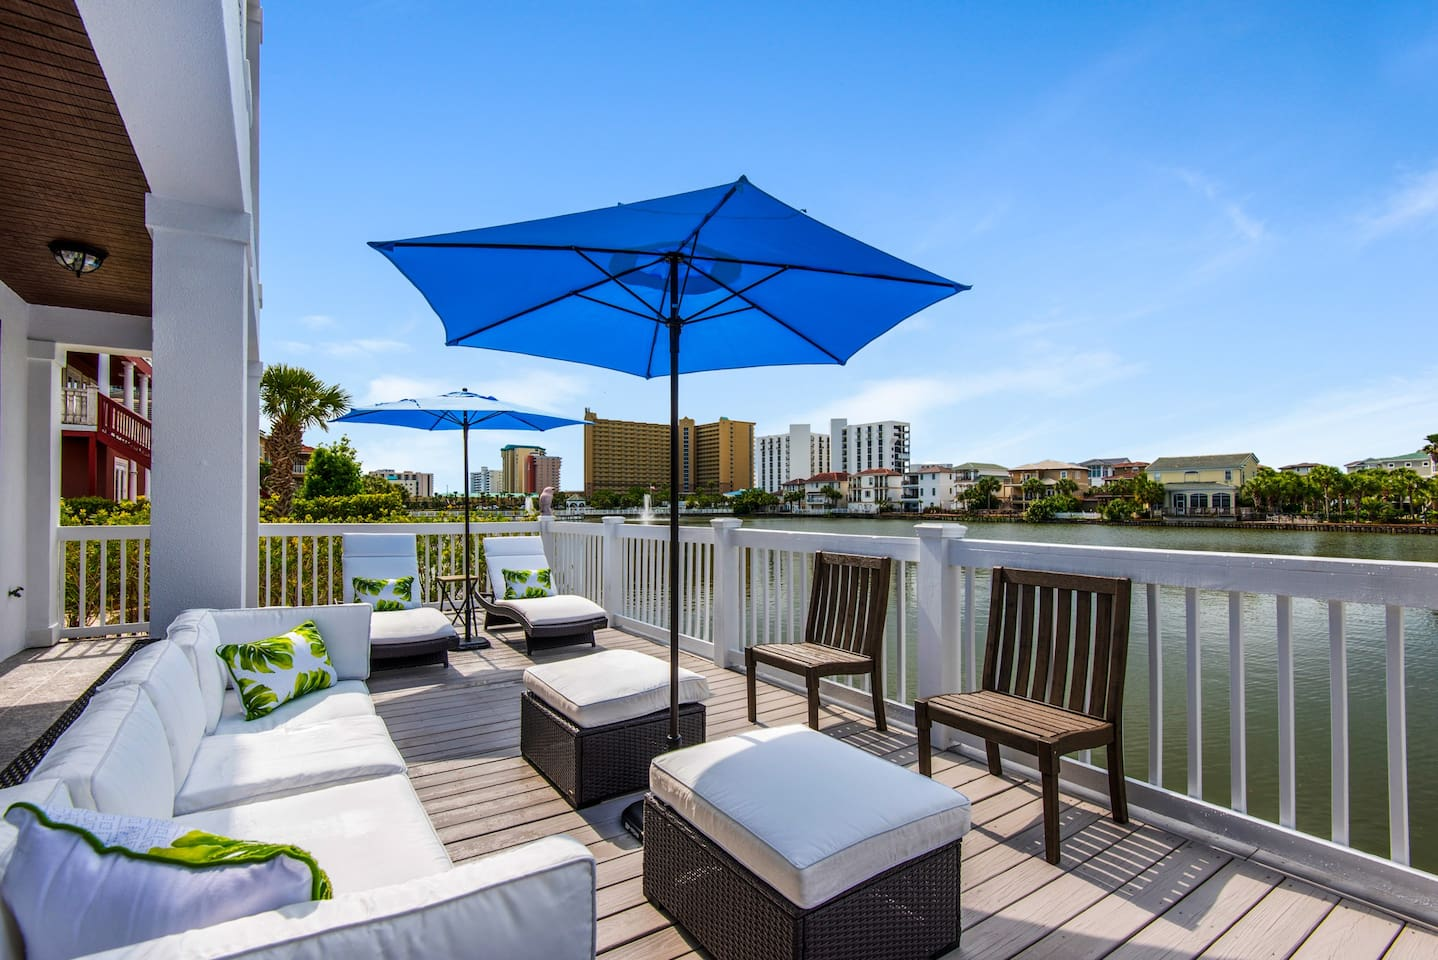 Expansive outdoor seating, dining and lounging overlooking a private dune lake.  Enjoy feeding our very entertaining turtles, ducks,  pelicans, and herons from the comfort of your home.